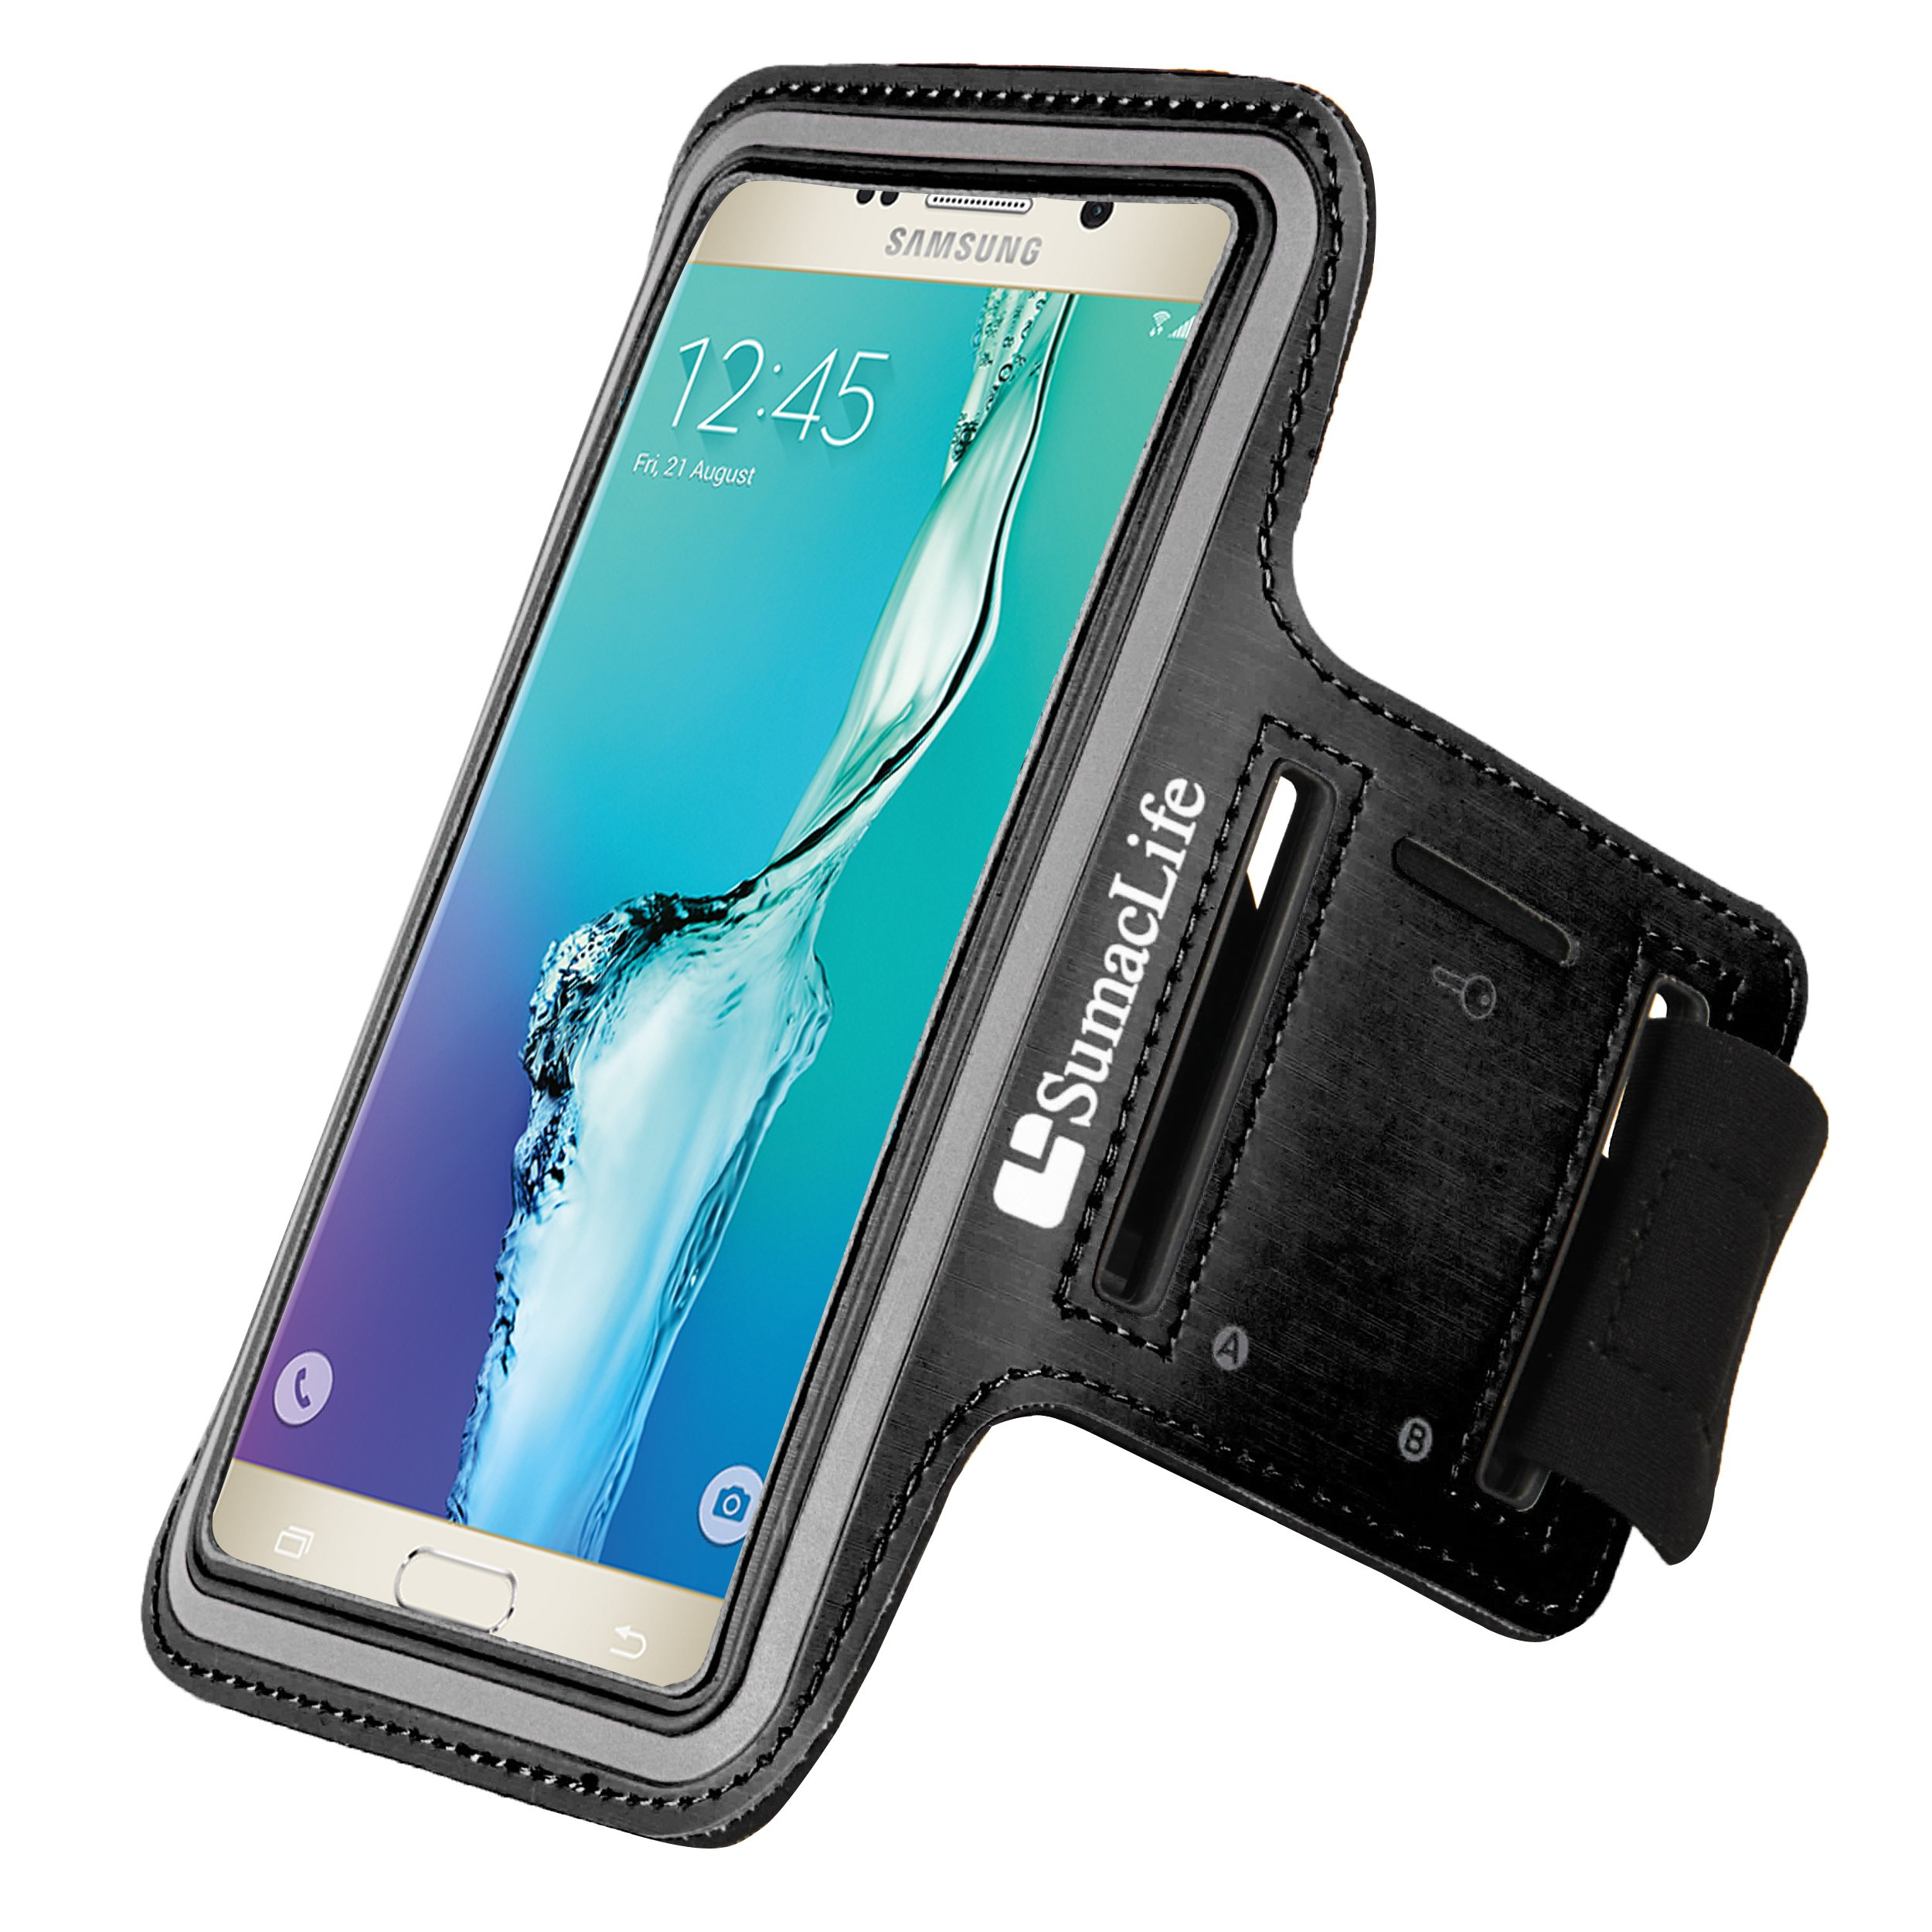 Fashion sports series cellphone armband armlet for Samsung Galaxy S6 Edge Plus/ Note 5/ Note4/ A7/ A8/ E7/ J7 (Black)